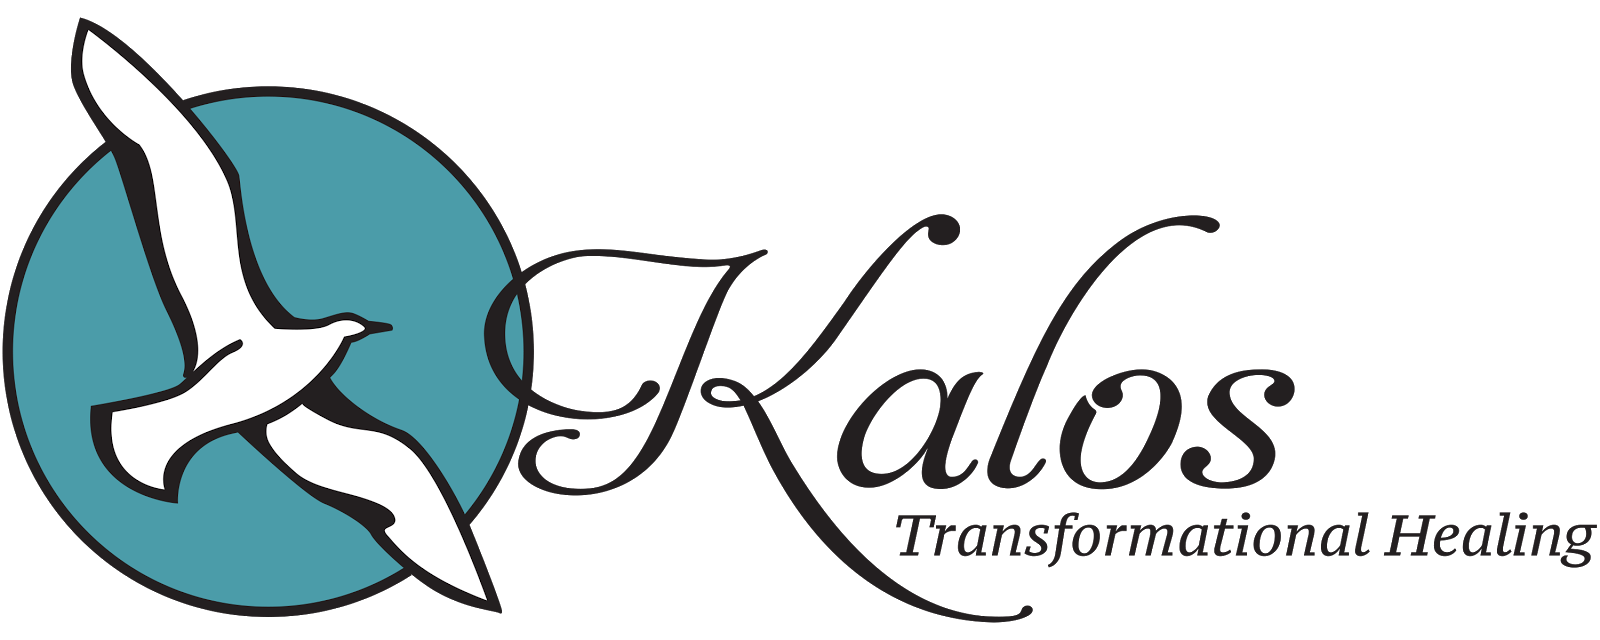 Visit the Kalos website!